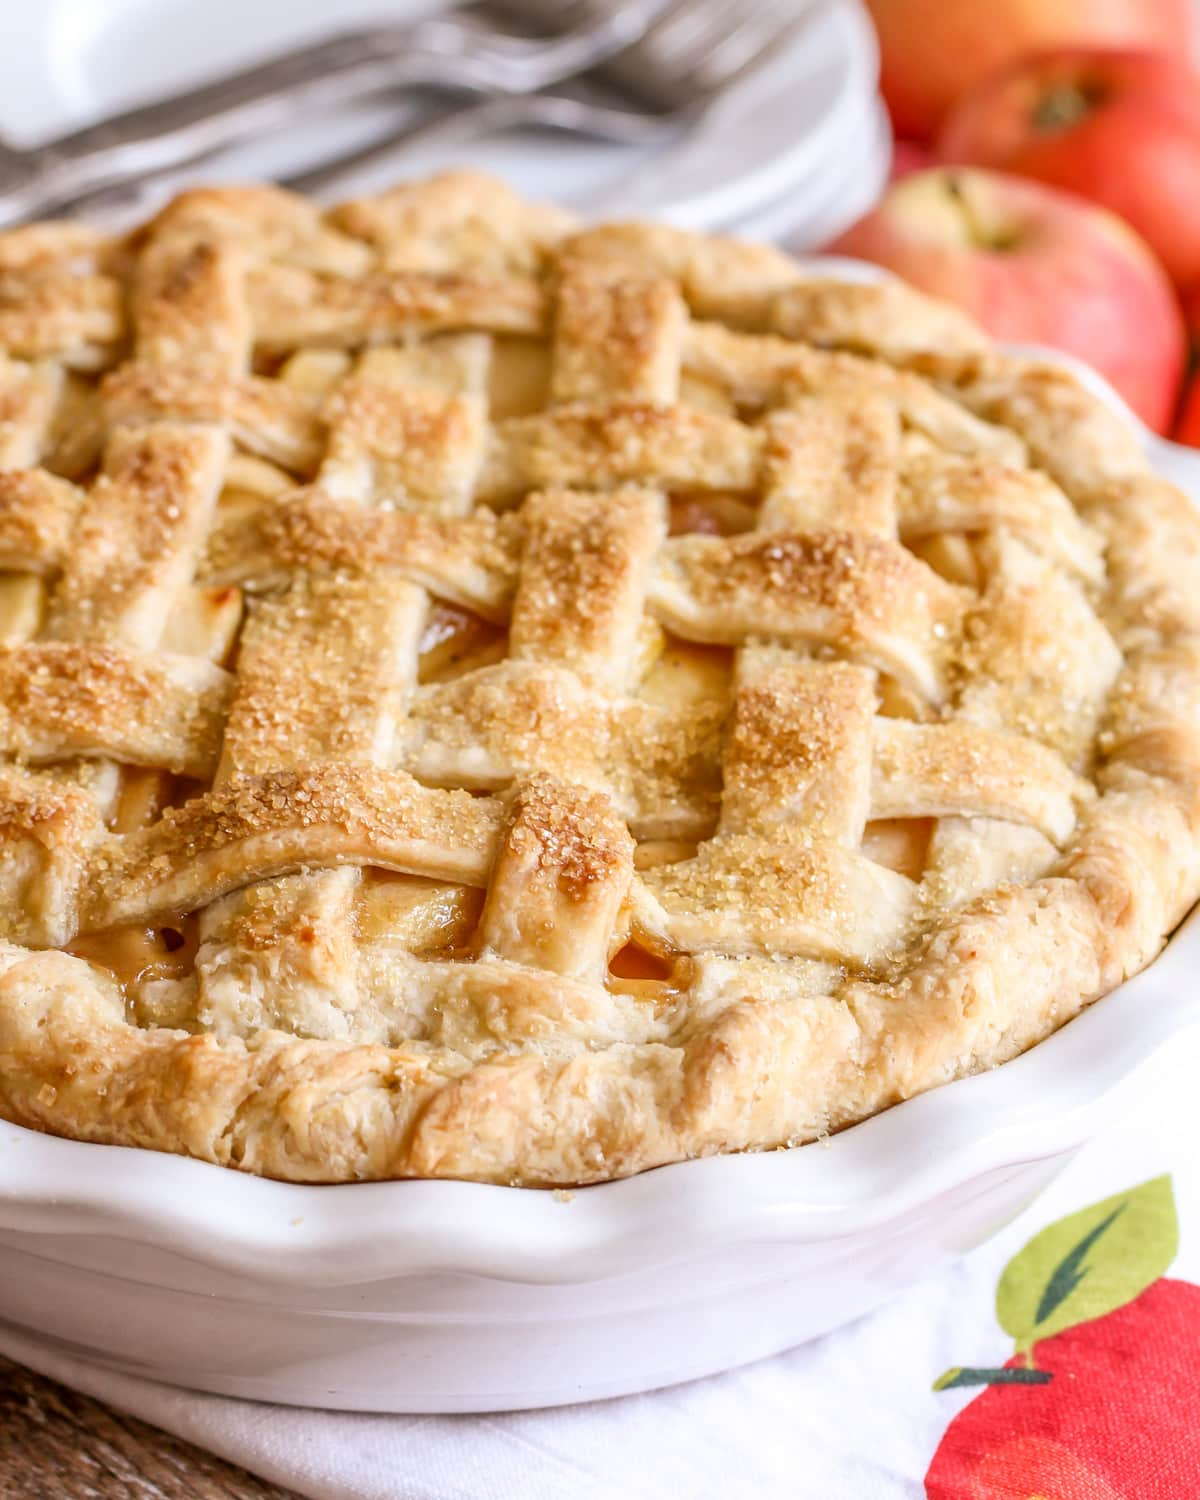 Homemade Apple Pie recipe close up image